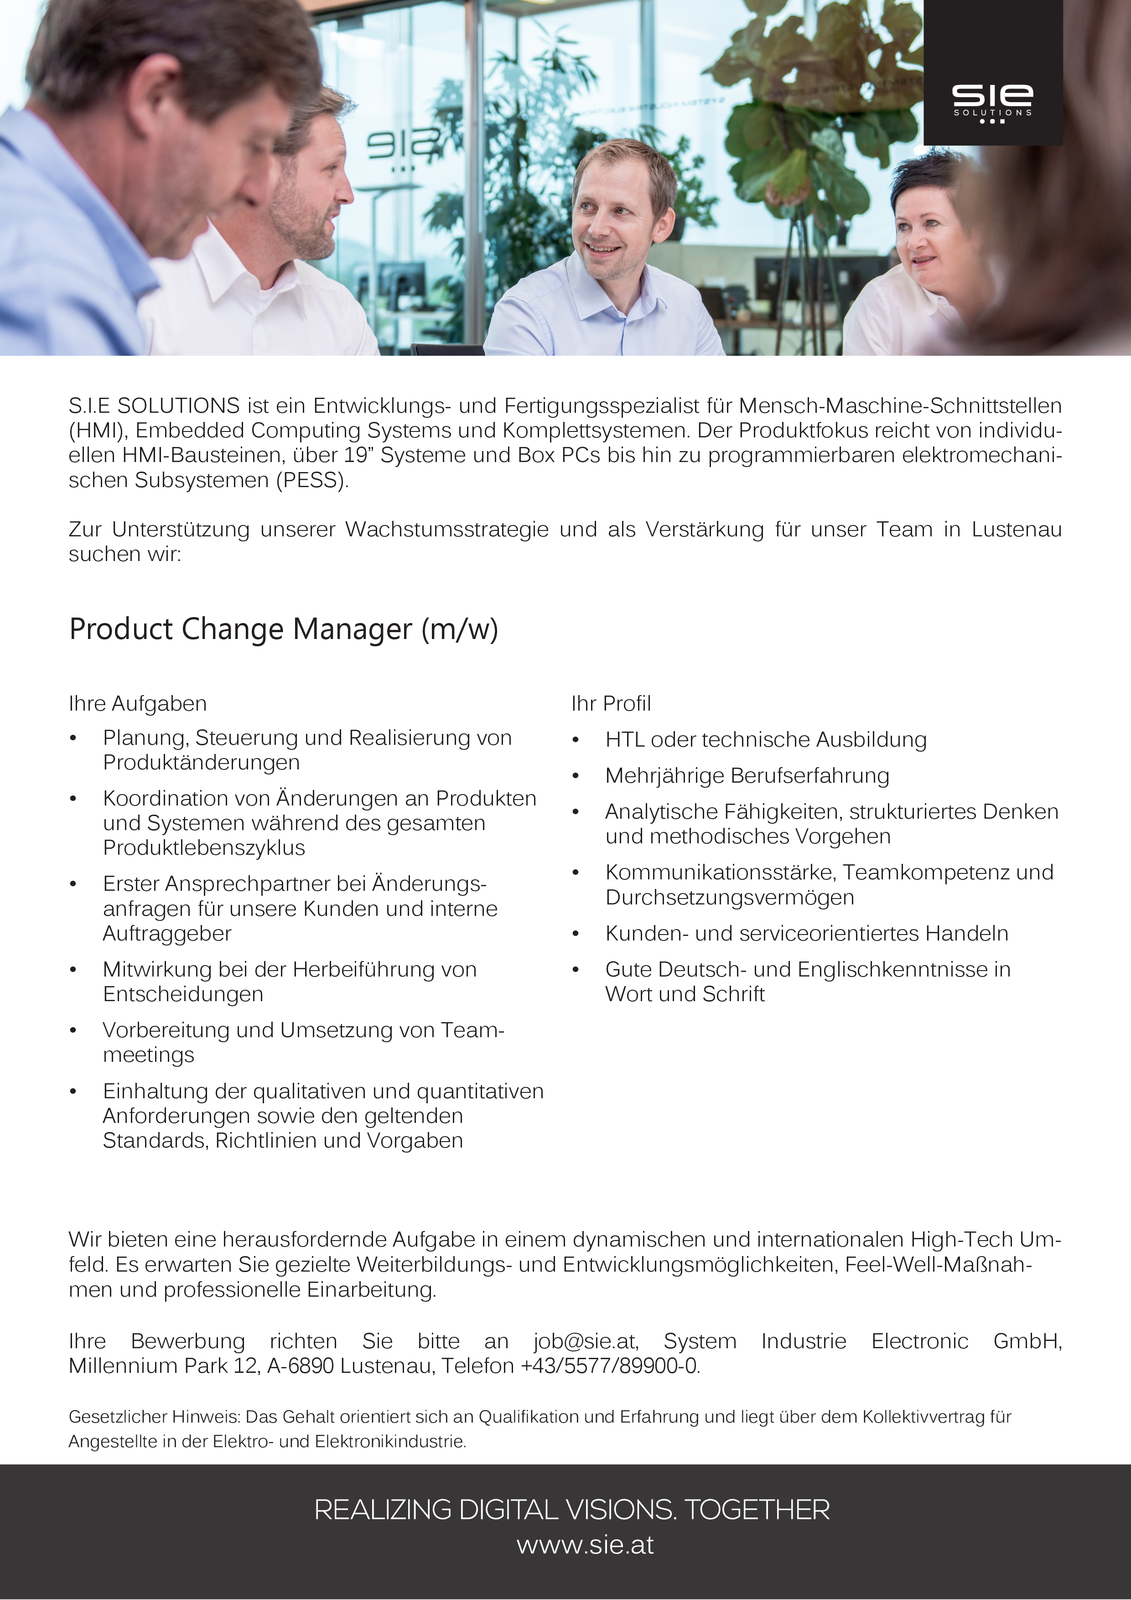 Product Change Manager (m/w)